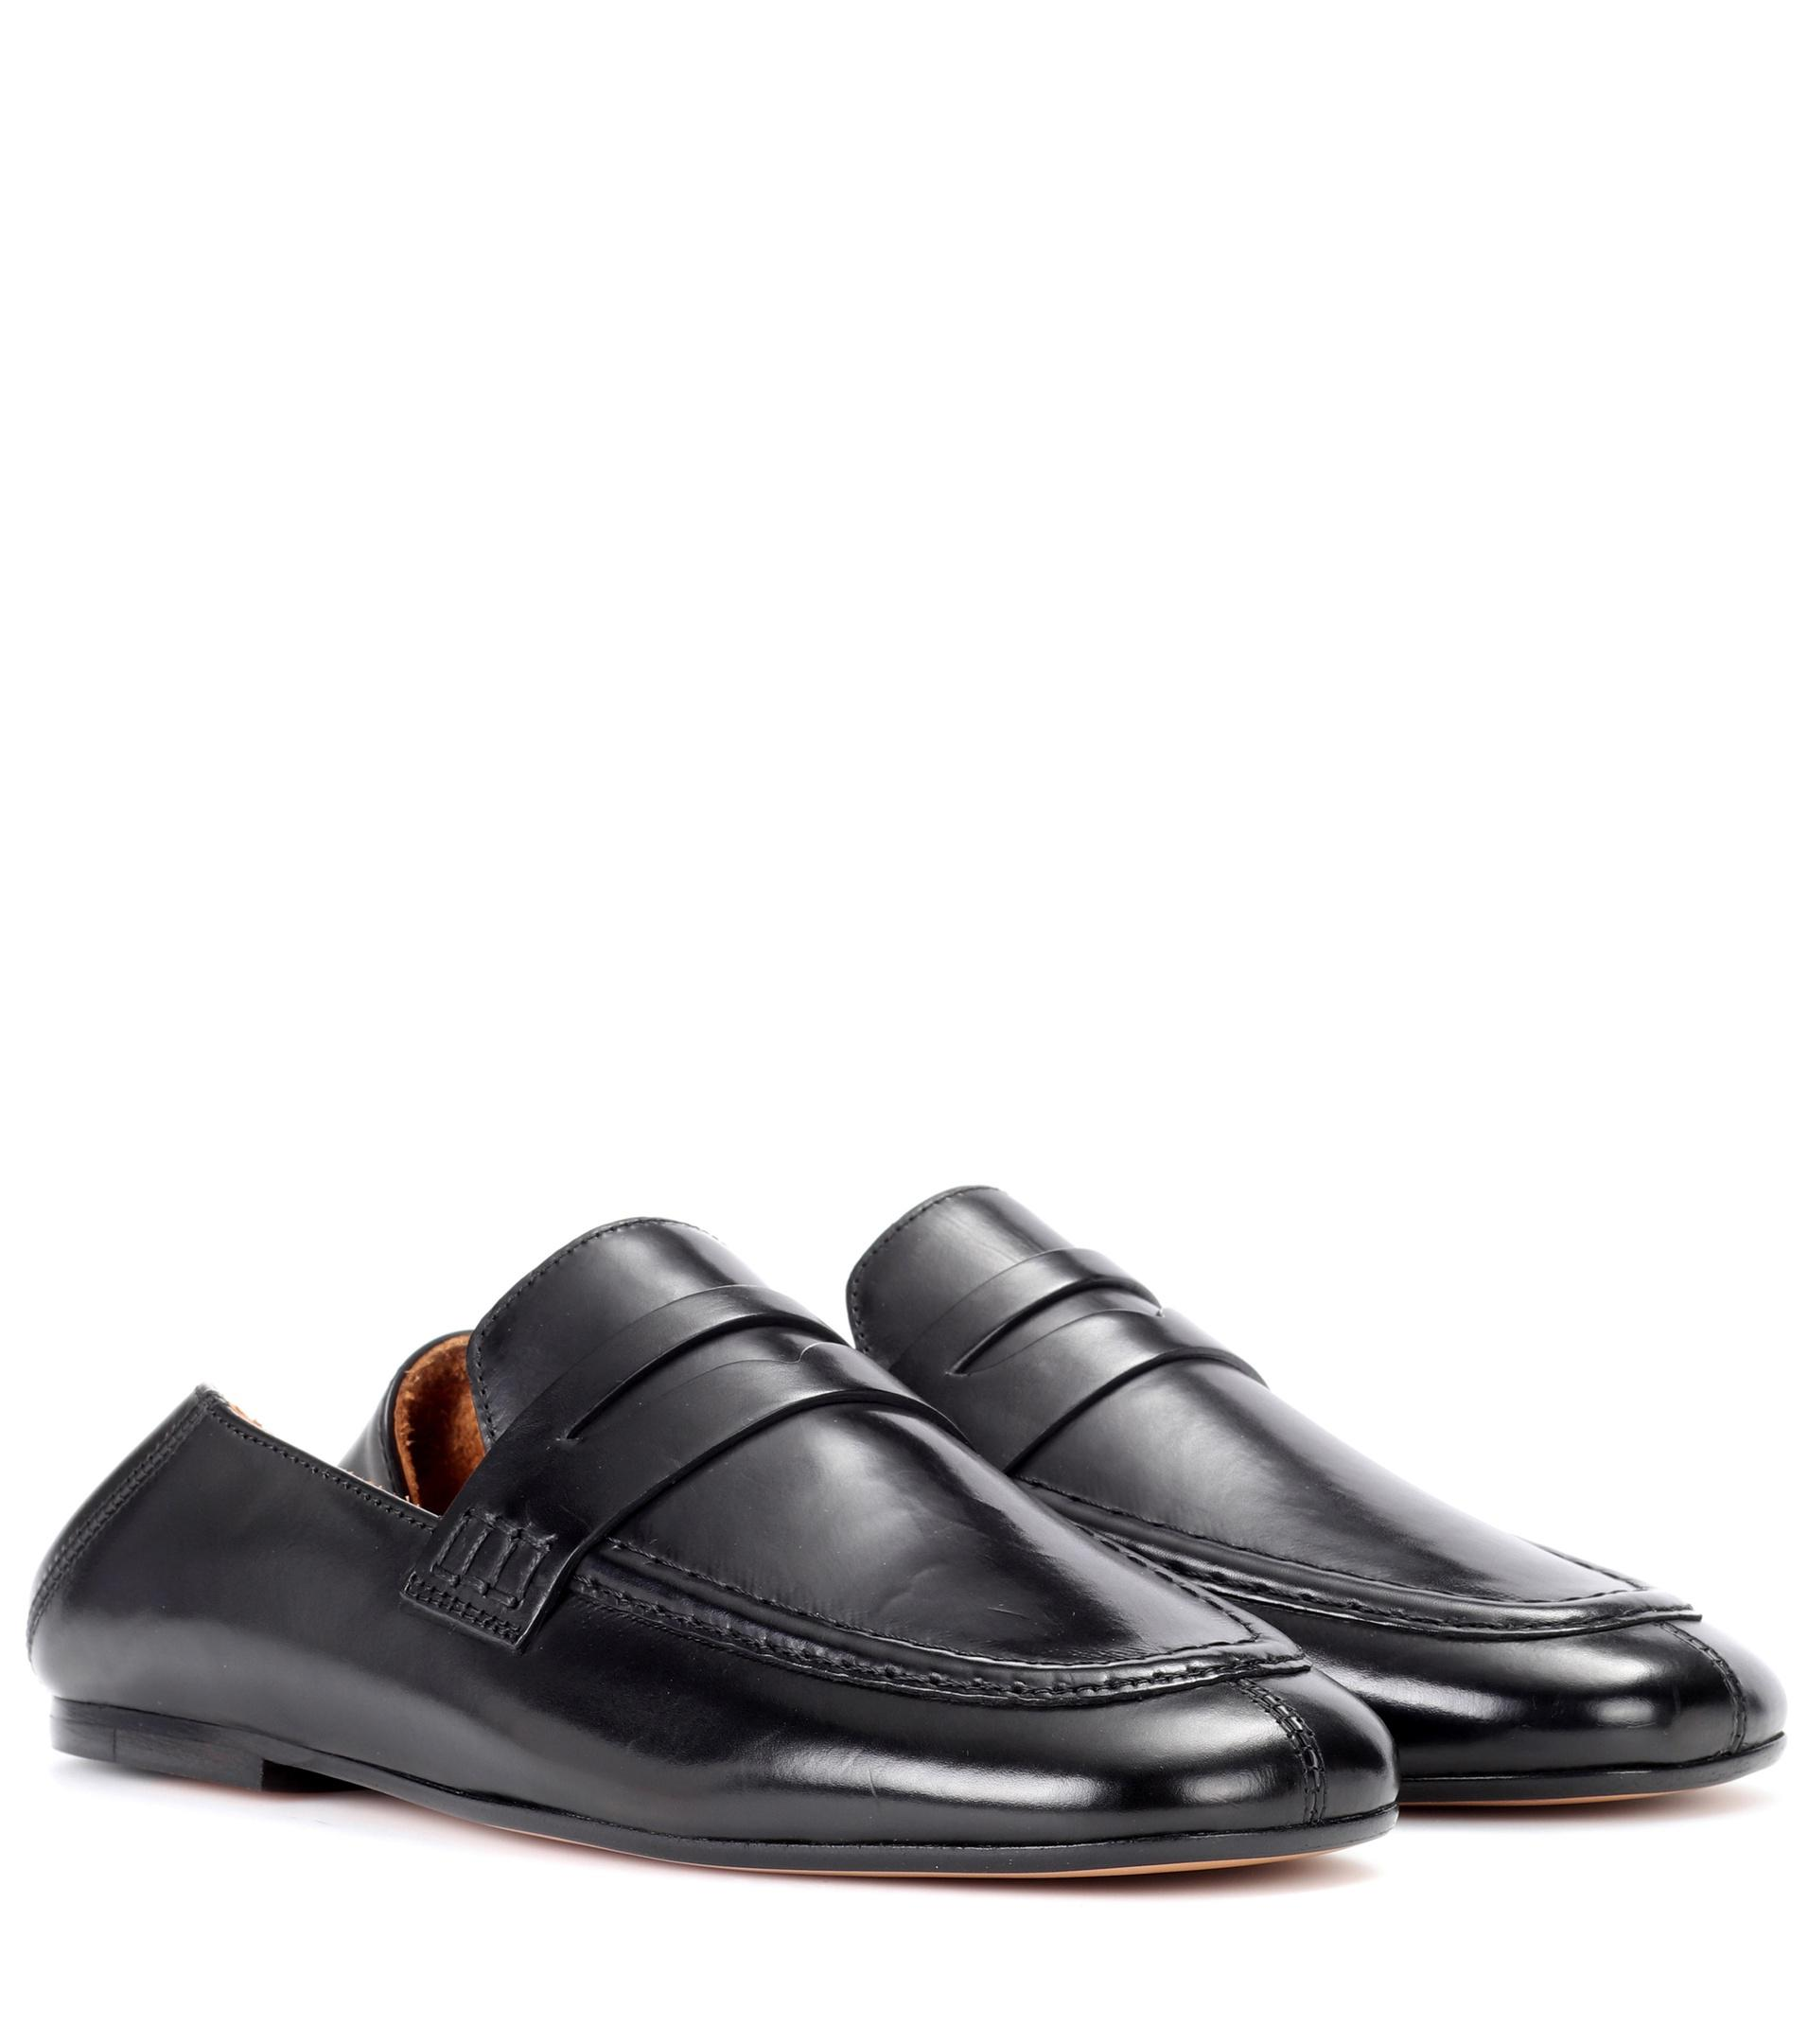 Big Sale For Sale Discount Choice Black Fanzel Loafers Isabel Marant Buy Cheap Cost Find Great Online a0a9rBvd31